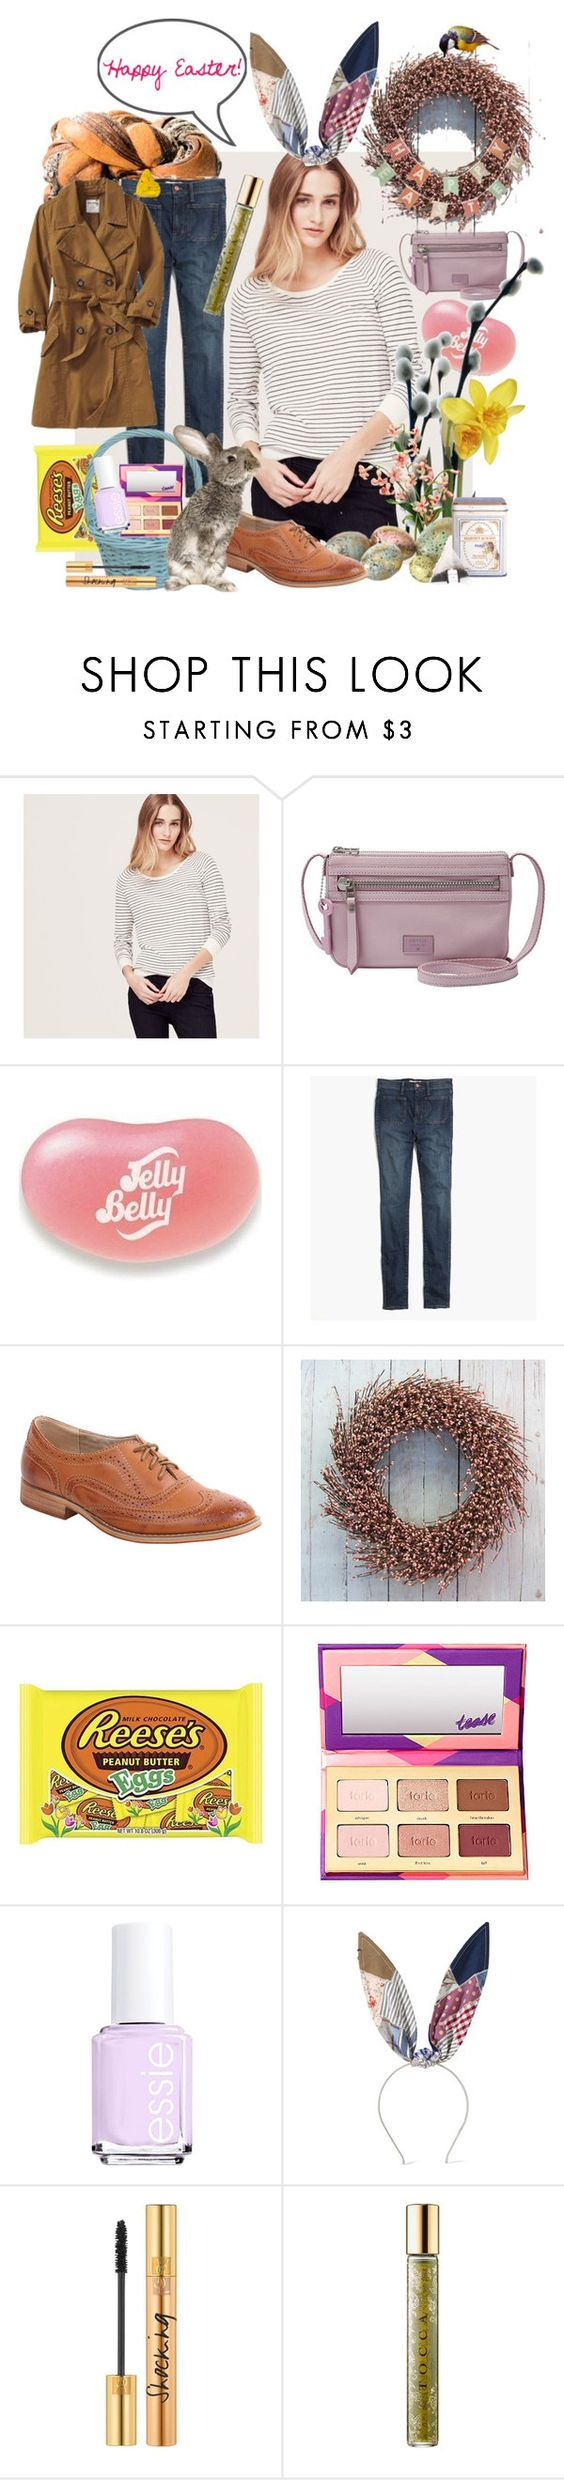 """""""Happy Easter!"""" by rachael-aislynn ❤ liked on Polyvore featuring LOFT, FOSSIL, Jelly Belly, Madewell, Wanted, tarte, Essie, Maison Michel, Yves Saint Laurent and Tocca"""